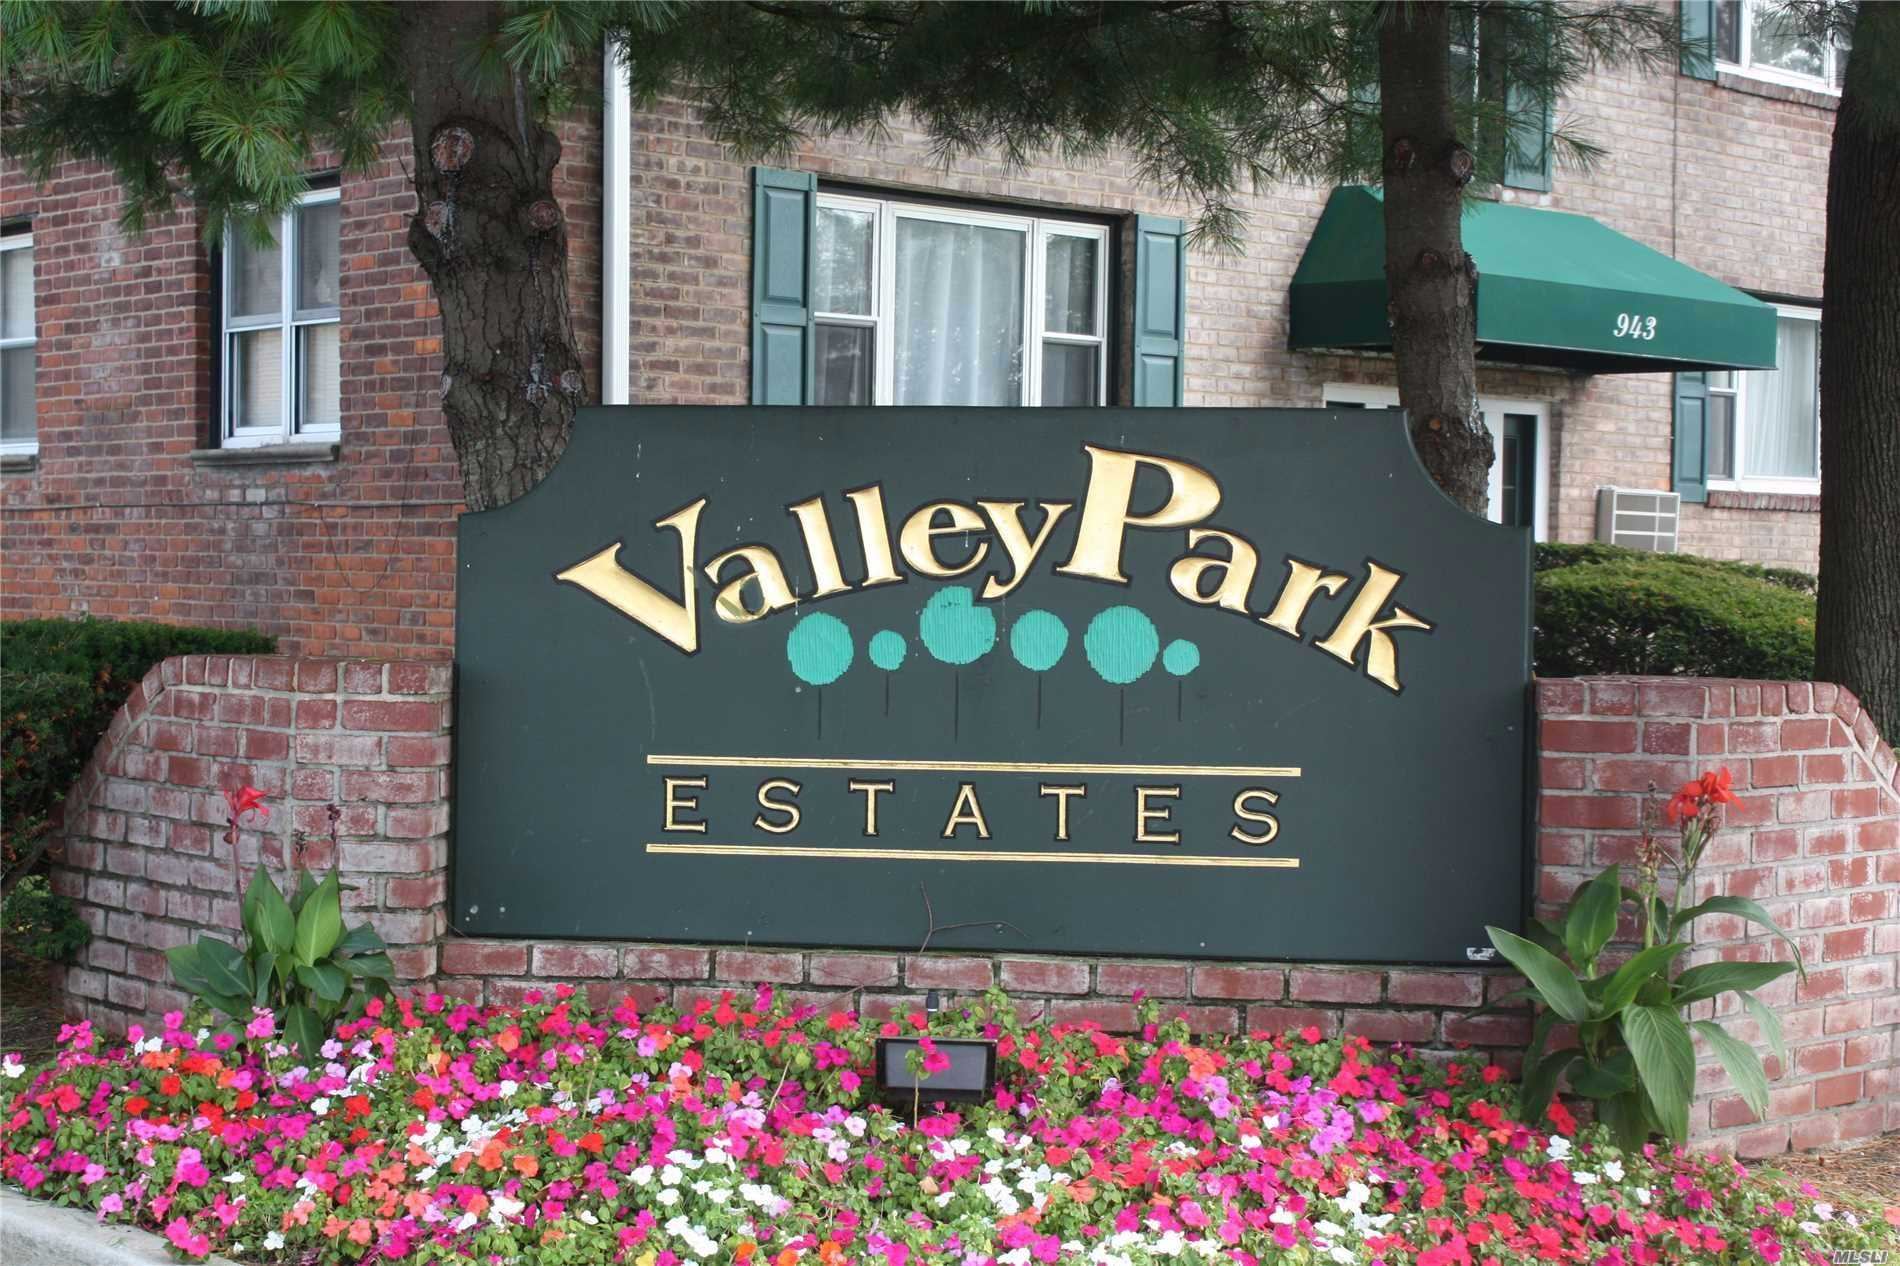 Beautiful, Bright, Sunny Move Right In 2 Bdrm Lower Corner Unit, Updated Kit & Bath W/New Appliance, Freshly Painted, Just Polished Wood Floors, Pristine Valley Park Estates -- 18 Acres Of Tree Lined Park Like Settings. 2 On-Site Laundry Rooms. Close To Schools, Parkways, Shopping. Co-Op Requires Credit Score 700/ No Pets/ No Smoking. $500 Co-Op Application Fee. Min Income Required